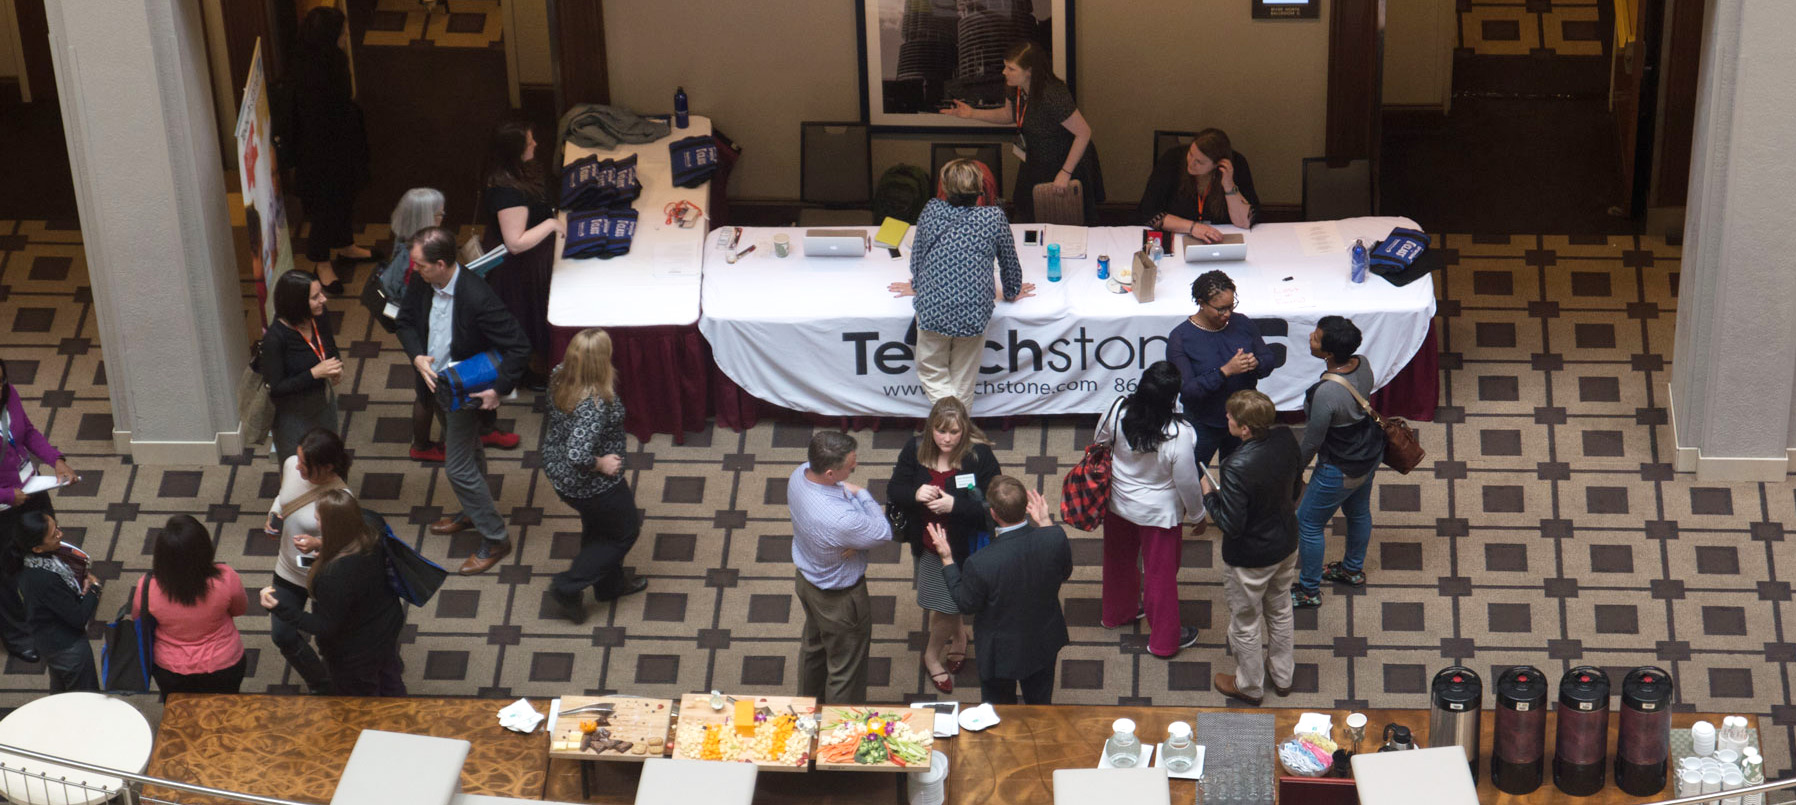 InterAct - the Teachstone conference